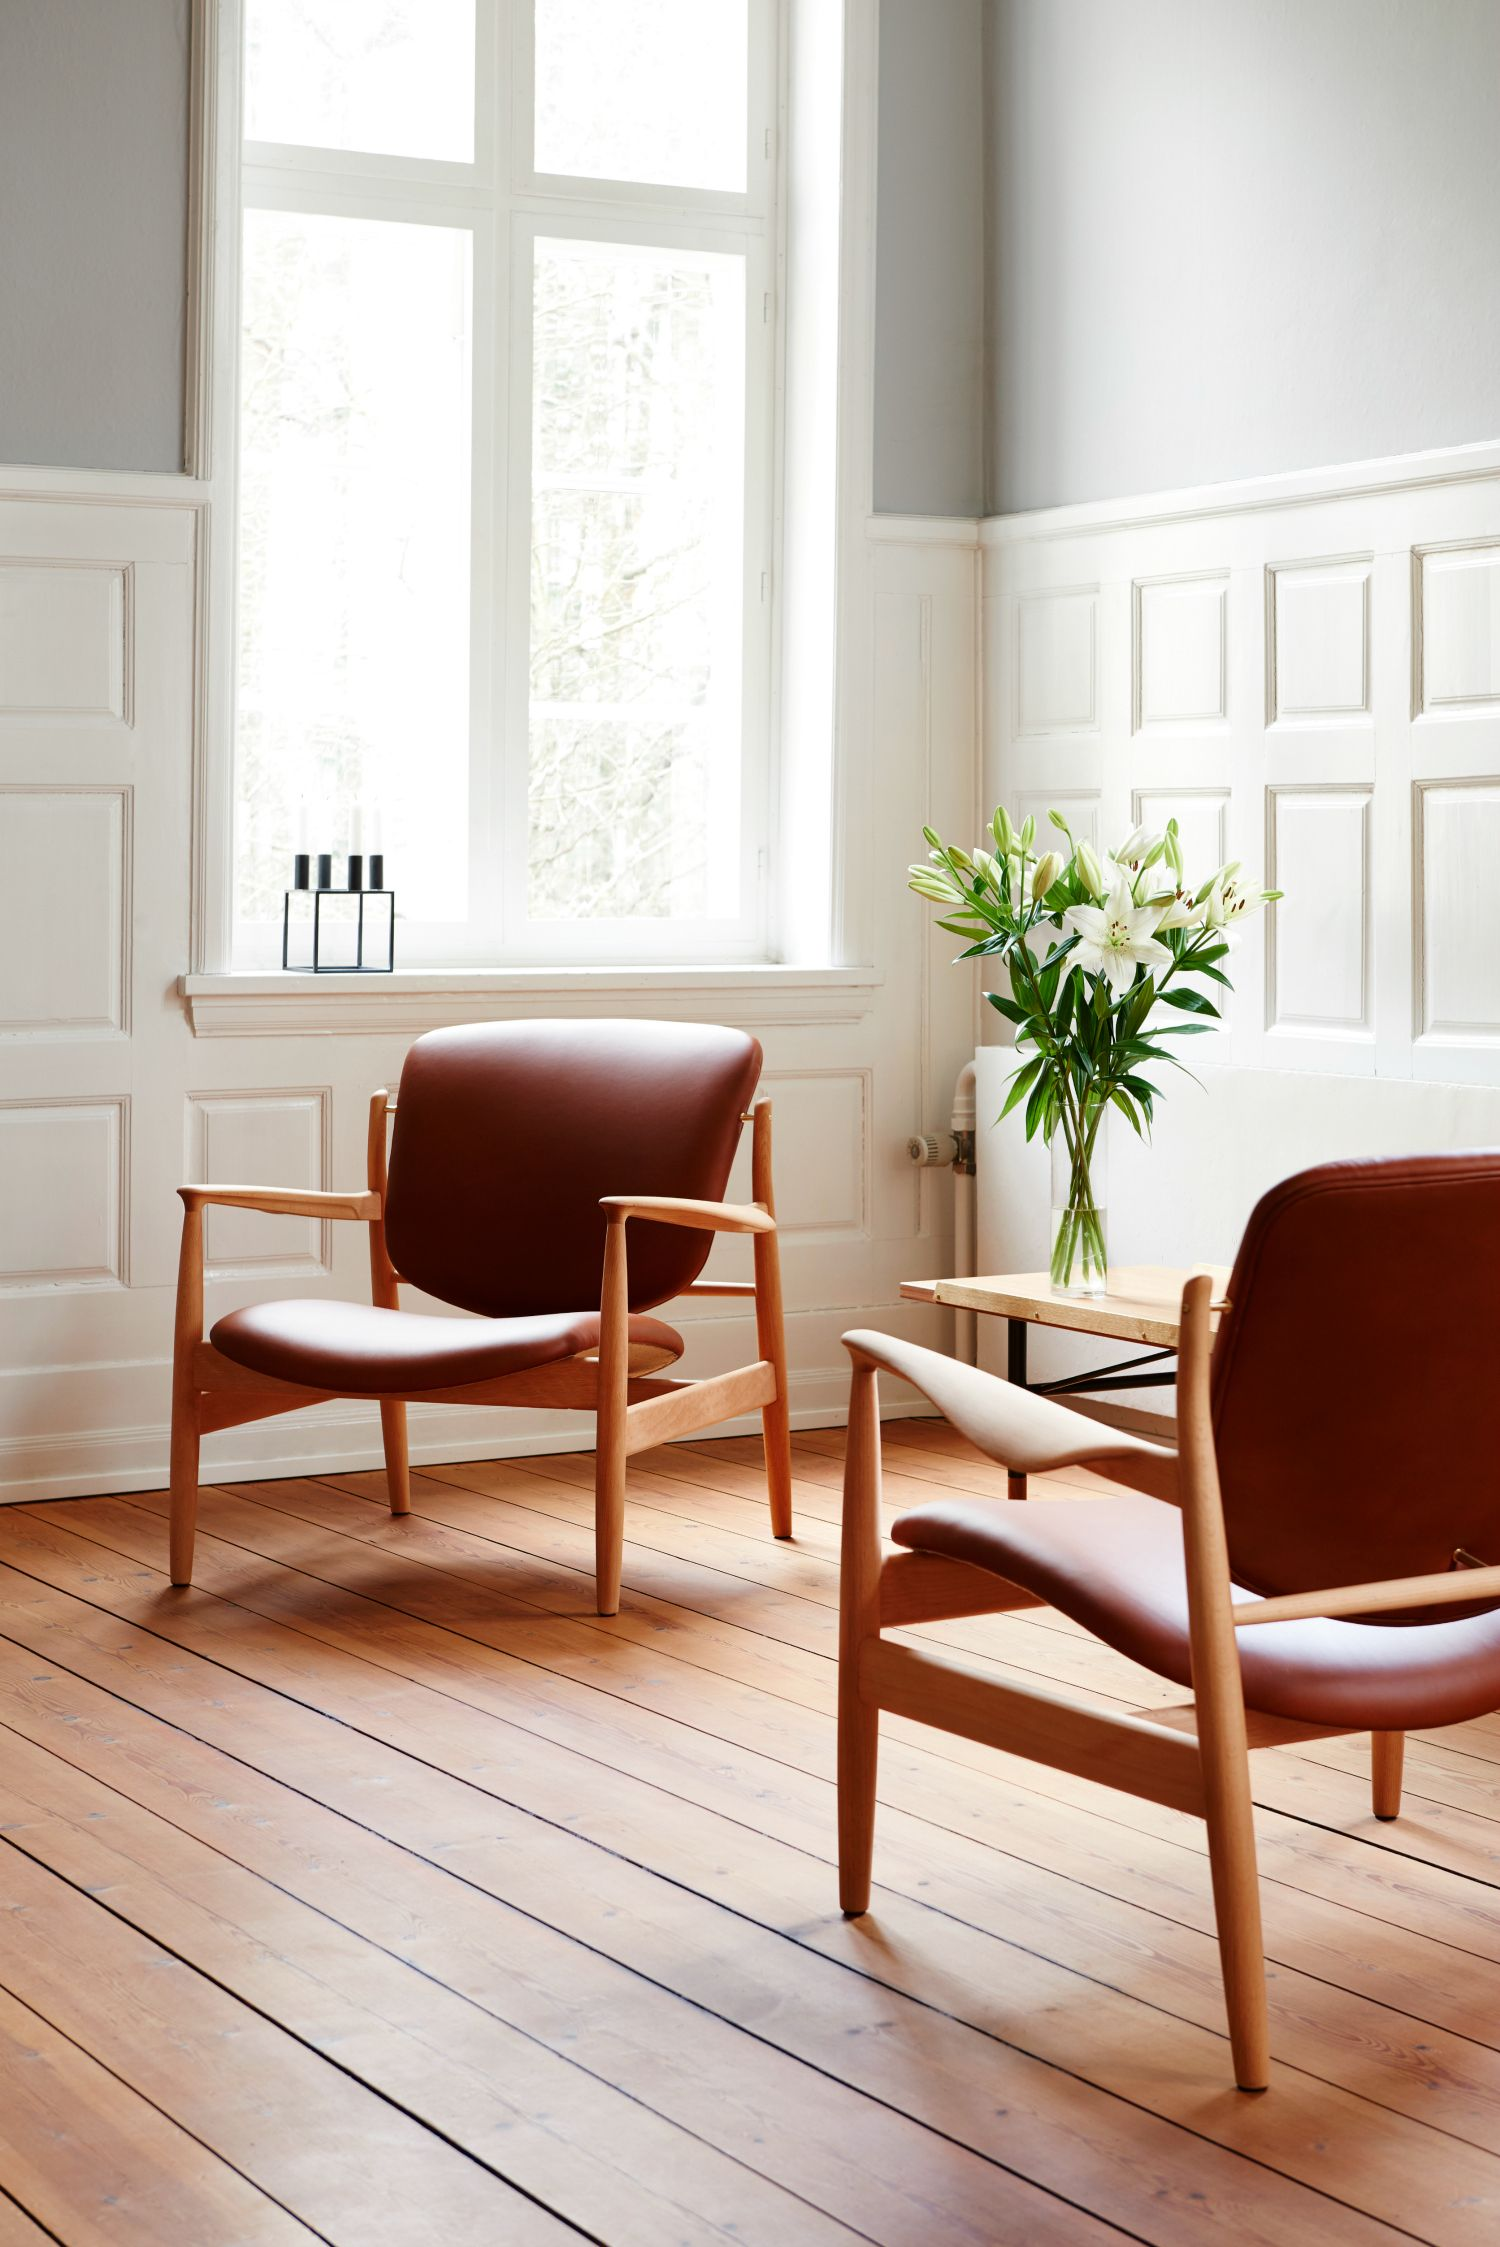 Beautiful light living room with the France Chair designed by Finn Juhl. The chair was originally called FJ 136 and was designed in 1956. Now produced in Denmark by Onecollection.